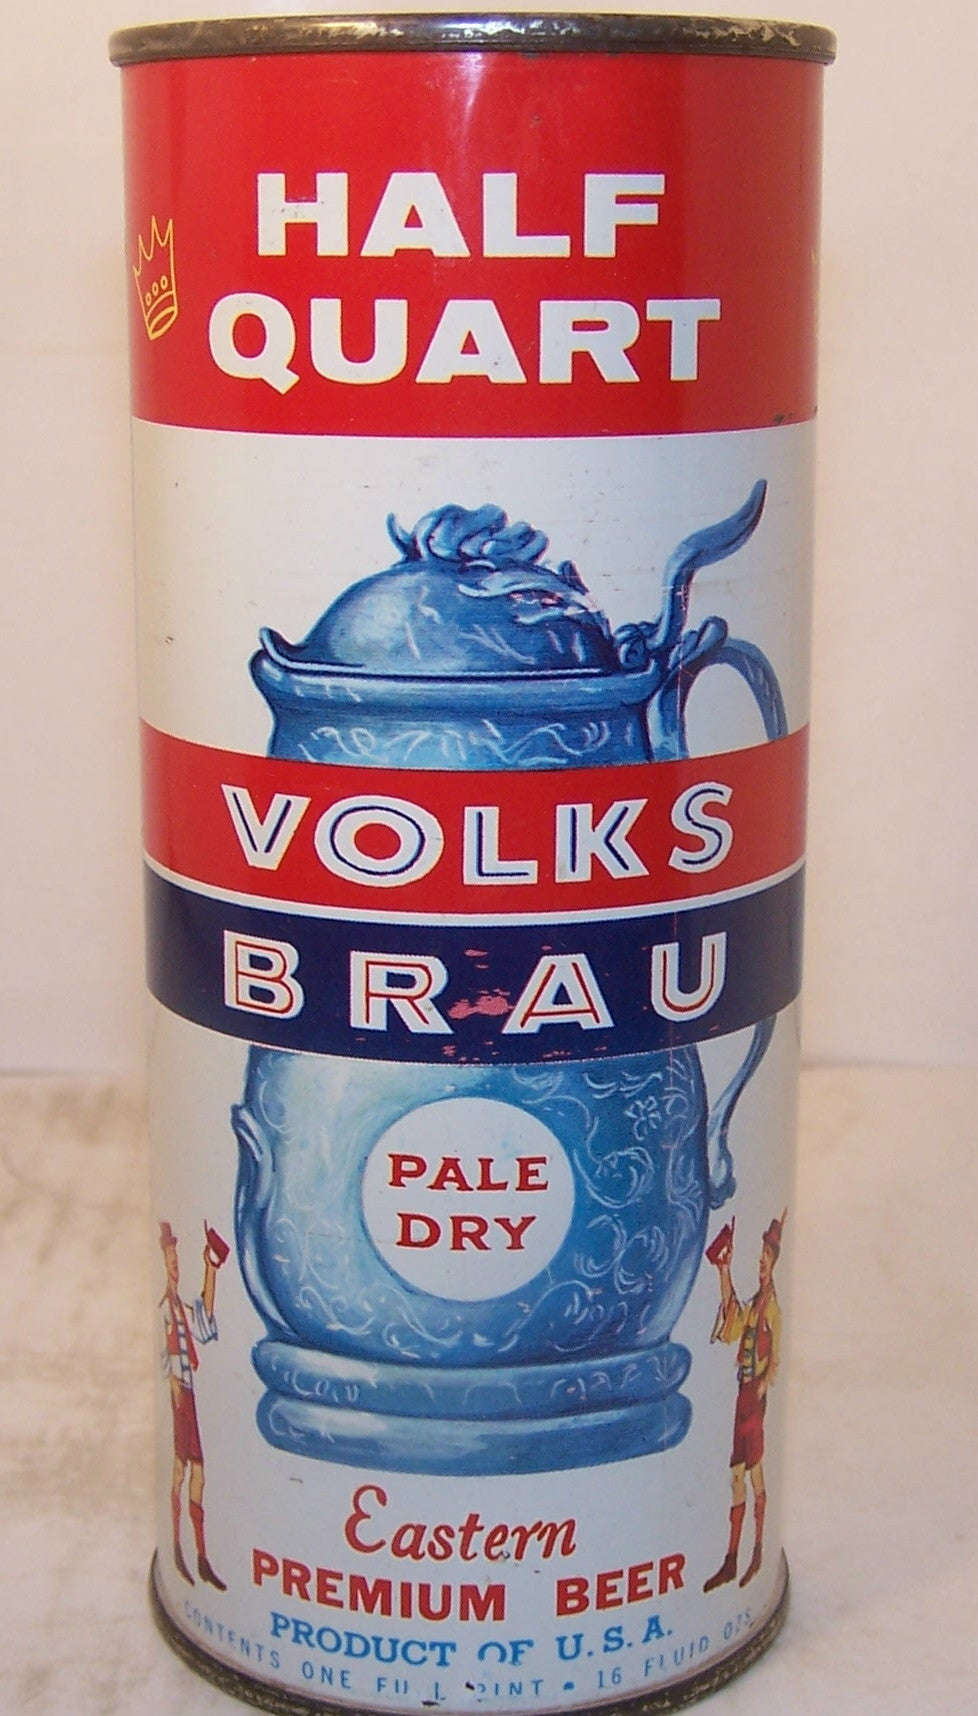 Volks Brau Pale Dry Beer, USBC 236-13, Grade 1/1+ Sold on 9/2/15